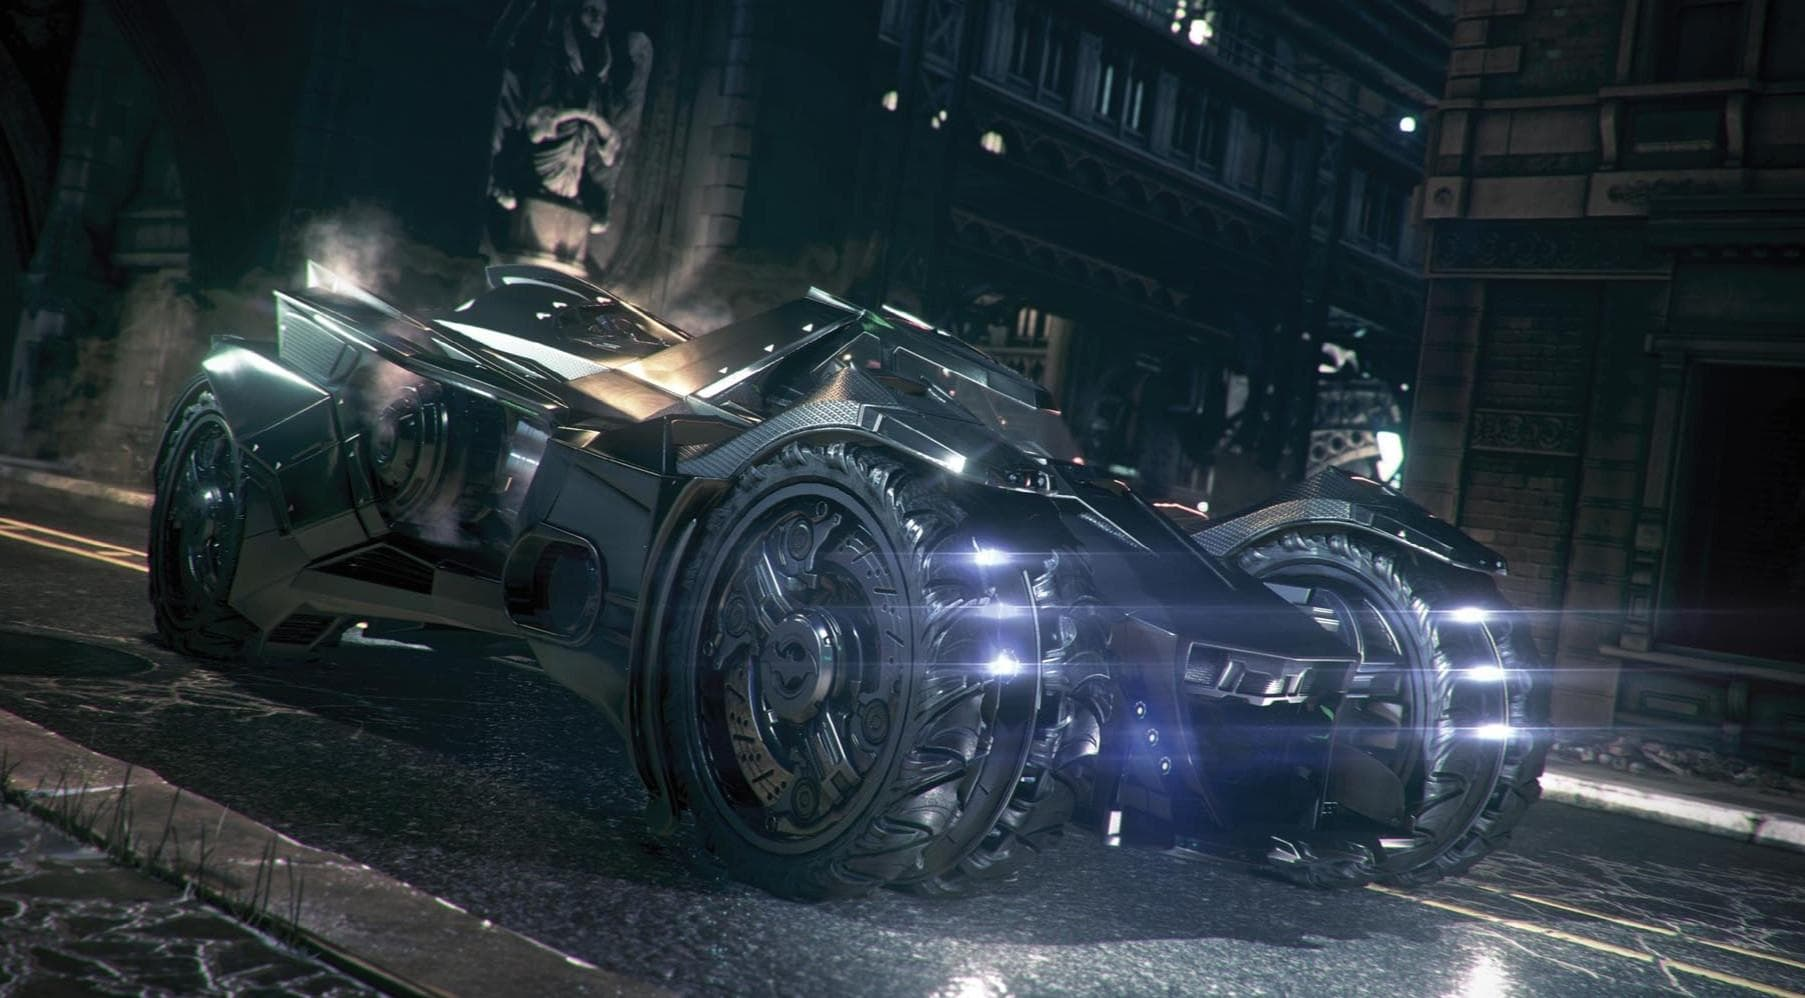 Image of Random Coolest Cars in Video Games